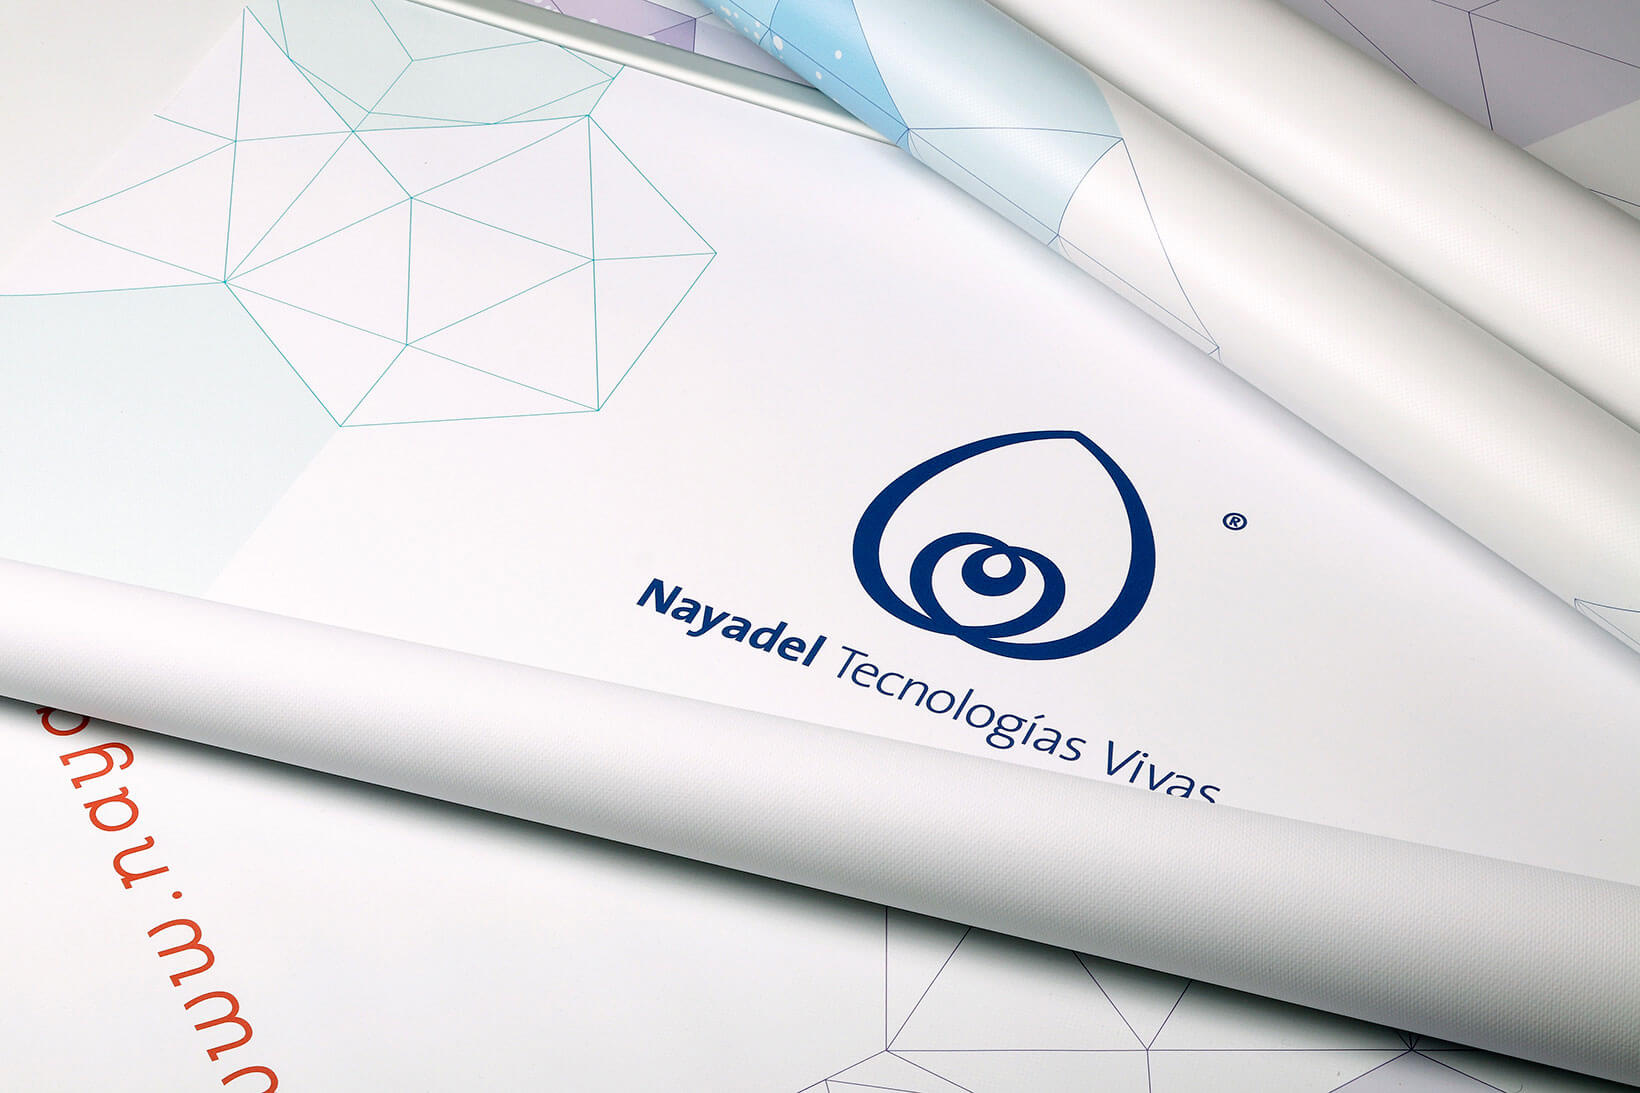 Nayadel branding corporate identity art direction graphic design visual communication sales material roll-up Vibranding